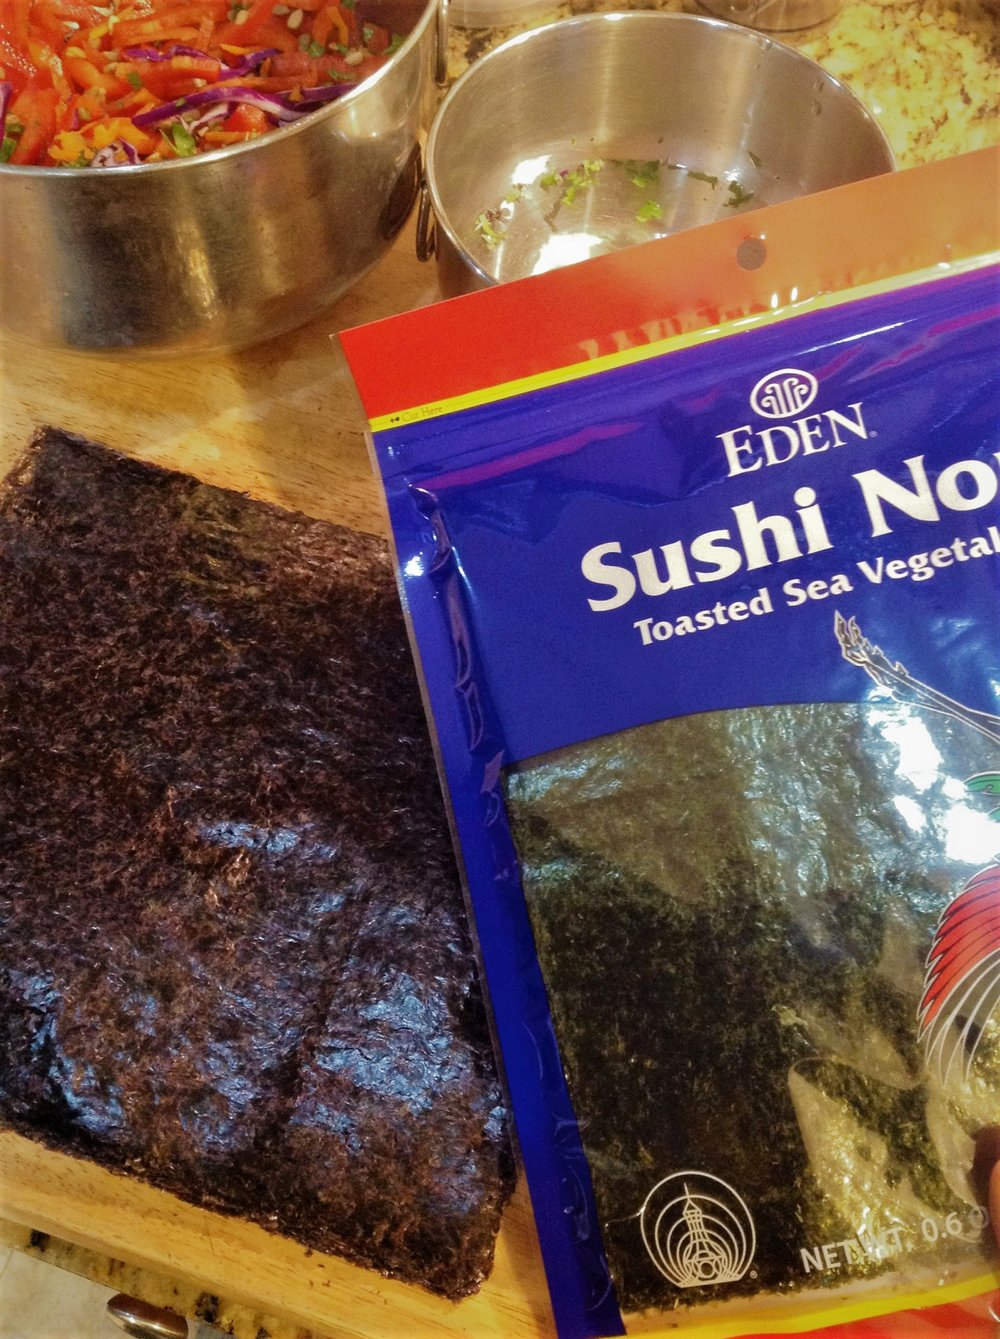 Nori is dried seaweed sheets, often used to make maki sushi rolls.  It comes in Toasted or Untoasted.  For true Raw, choose untoasted sheets